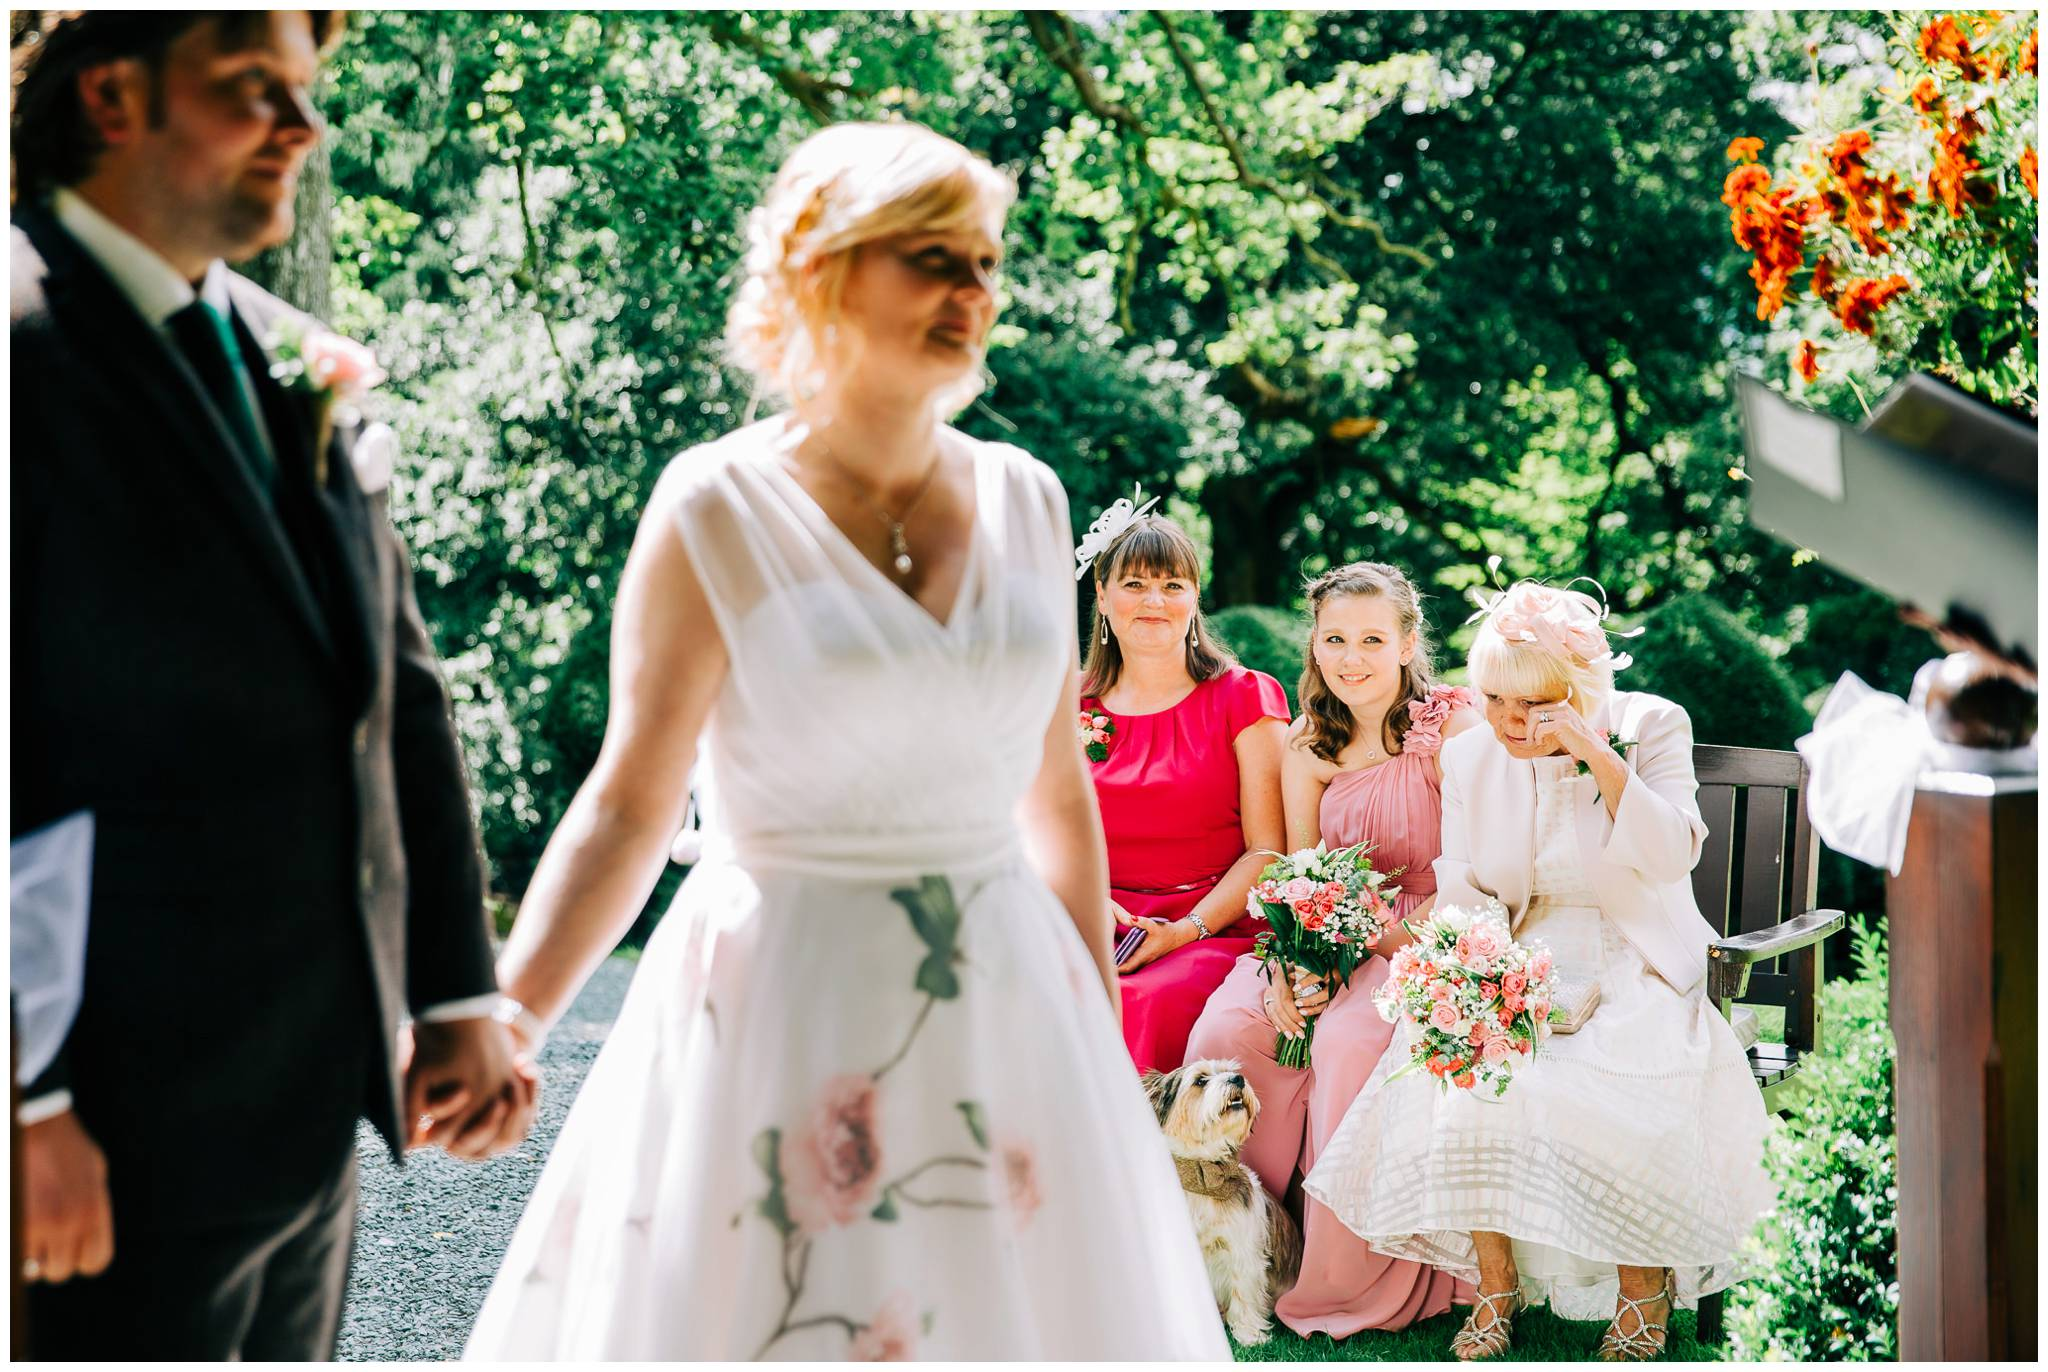 Natural wedding photography Manchester - Clare Robinson Photography_0183.jpg